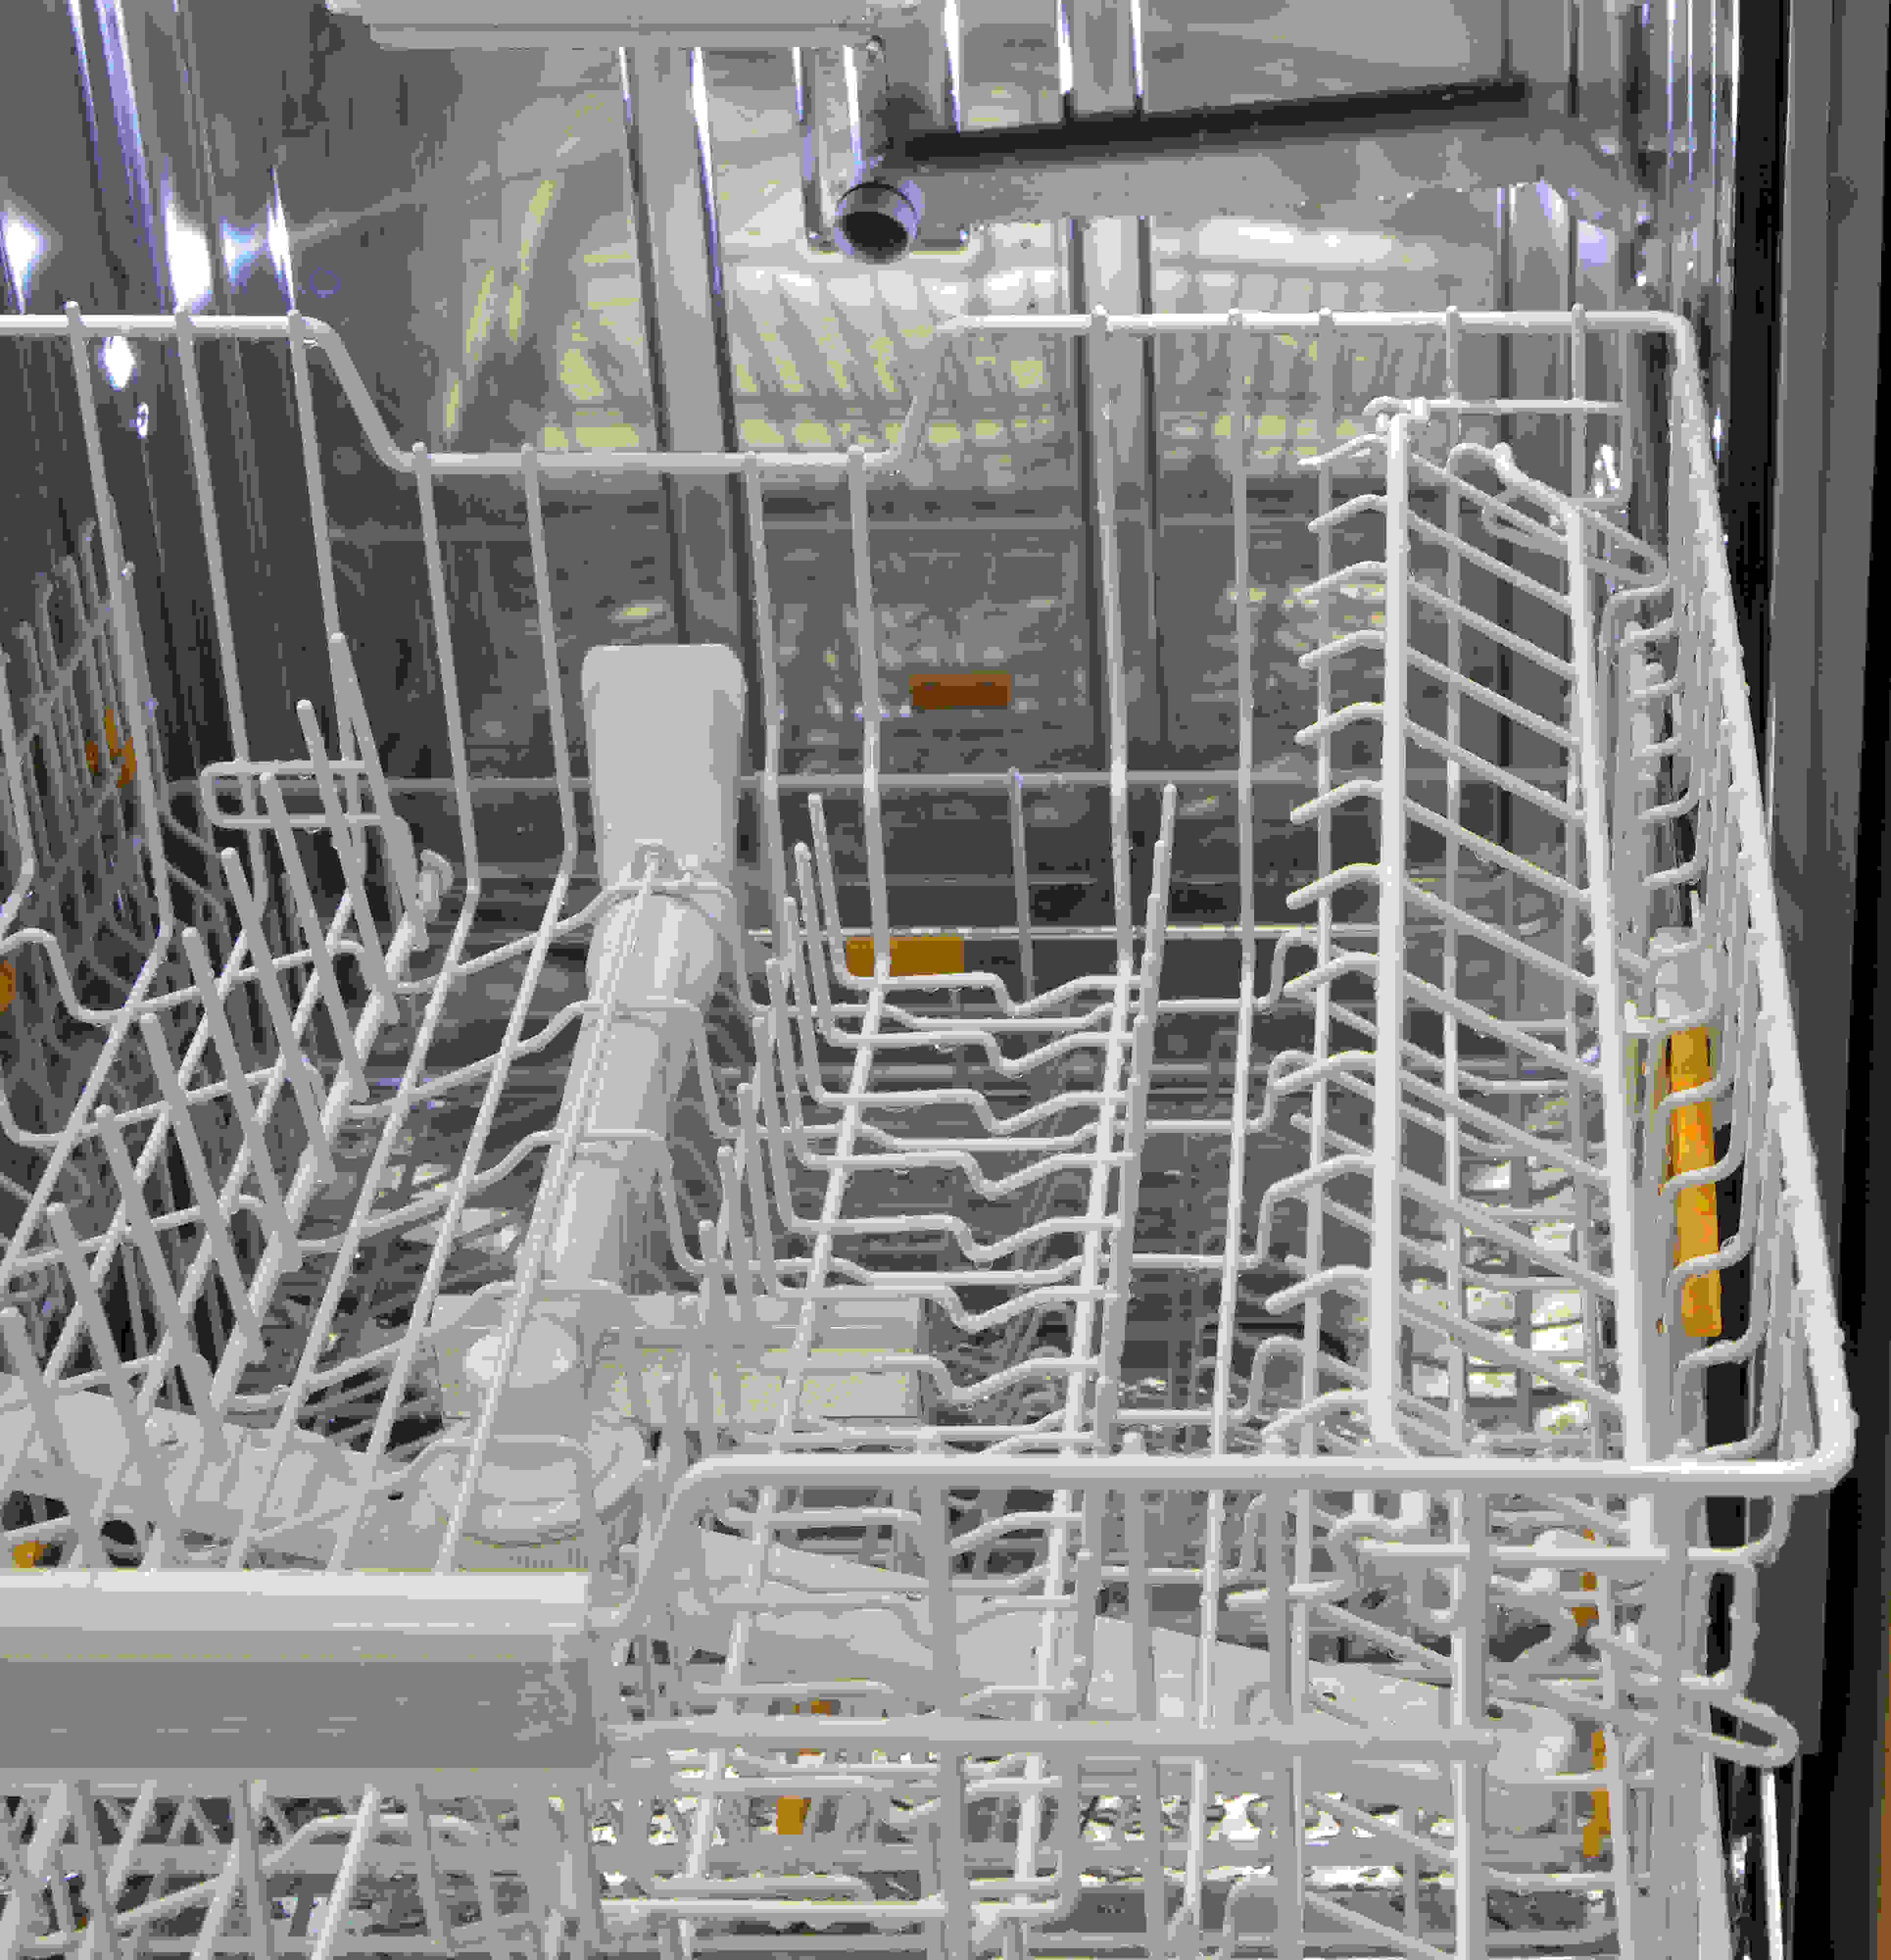 The other shelf on the upper rack with higher clearance